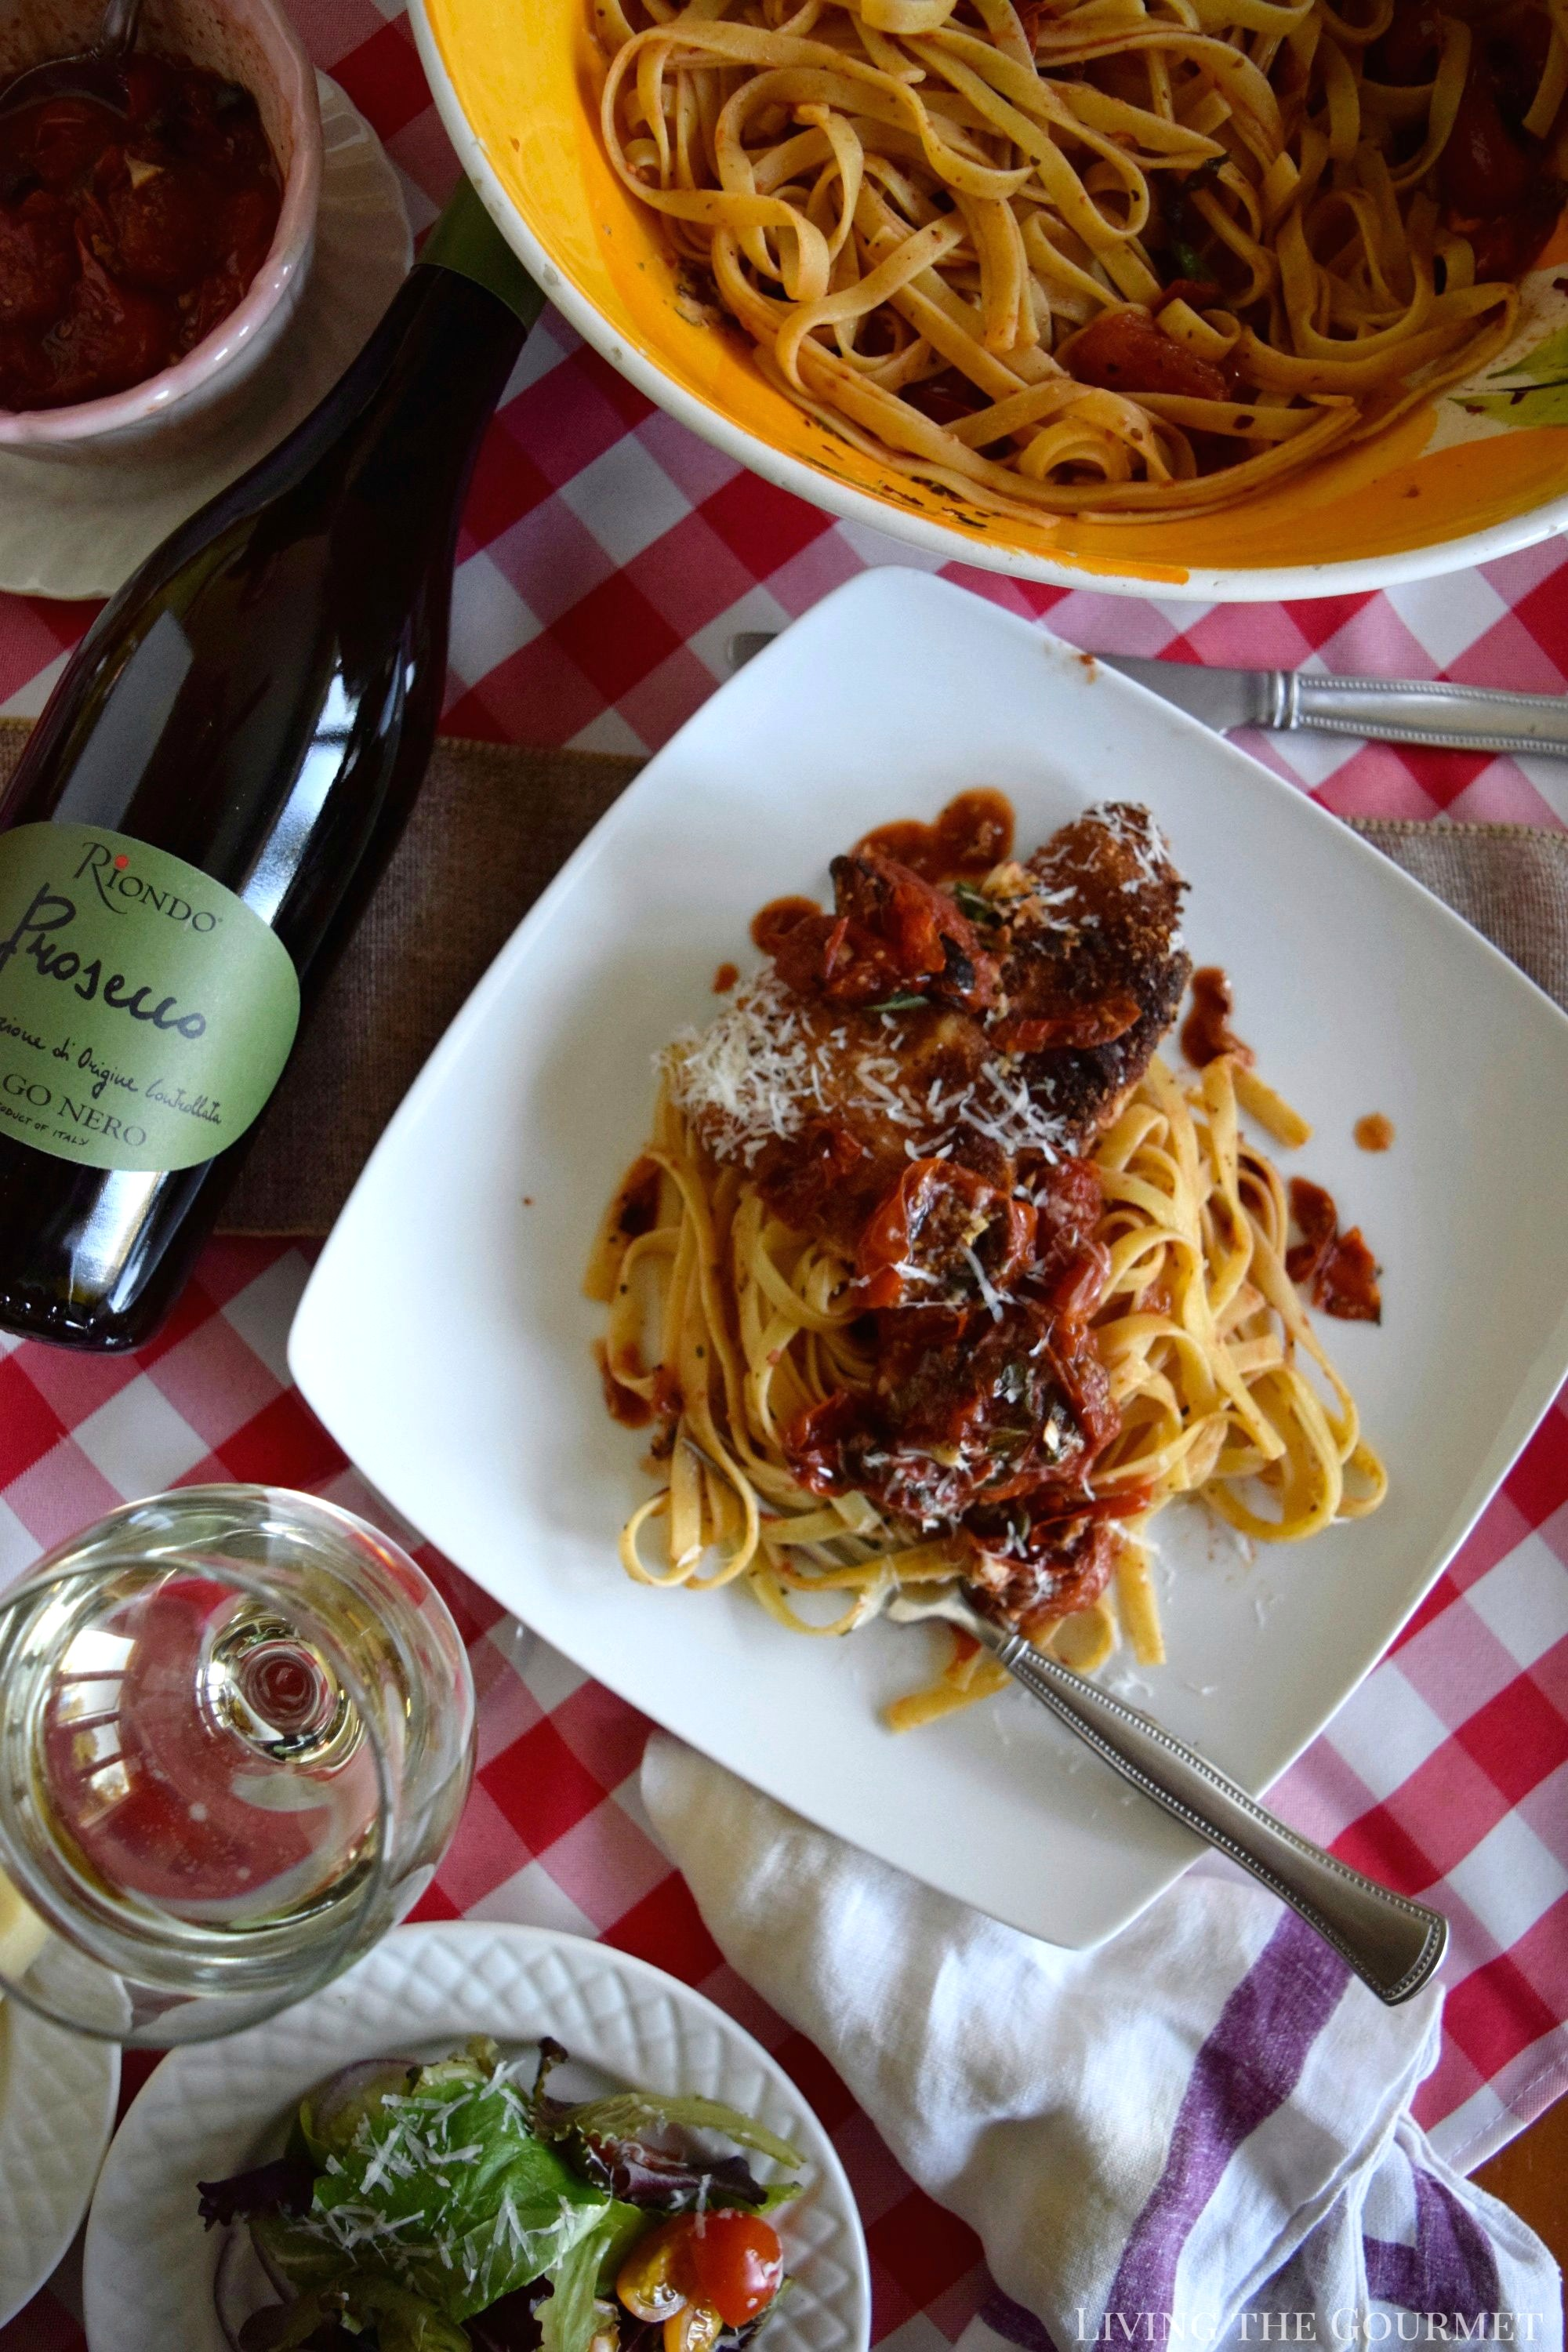 Living the Gourmet: Pork Parmigiana featuring Riondo Prosecco - This classic Italian recipe is served alongside a bubbly glass of Riondo Prosecco for an unforgettable meal! #RiondoProsecco #ItalianForsummer #ad